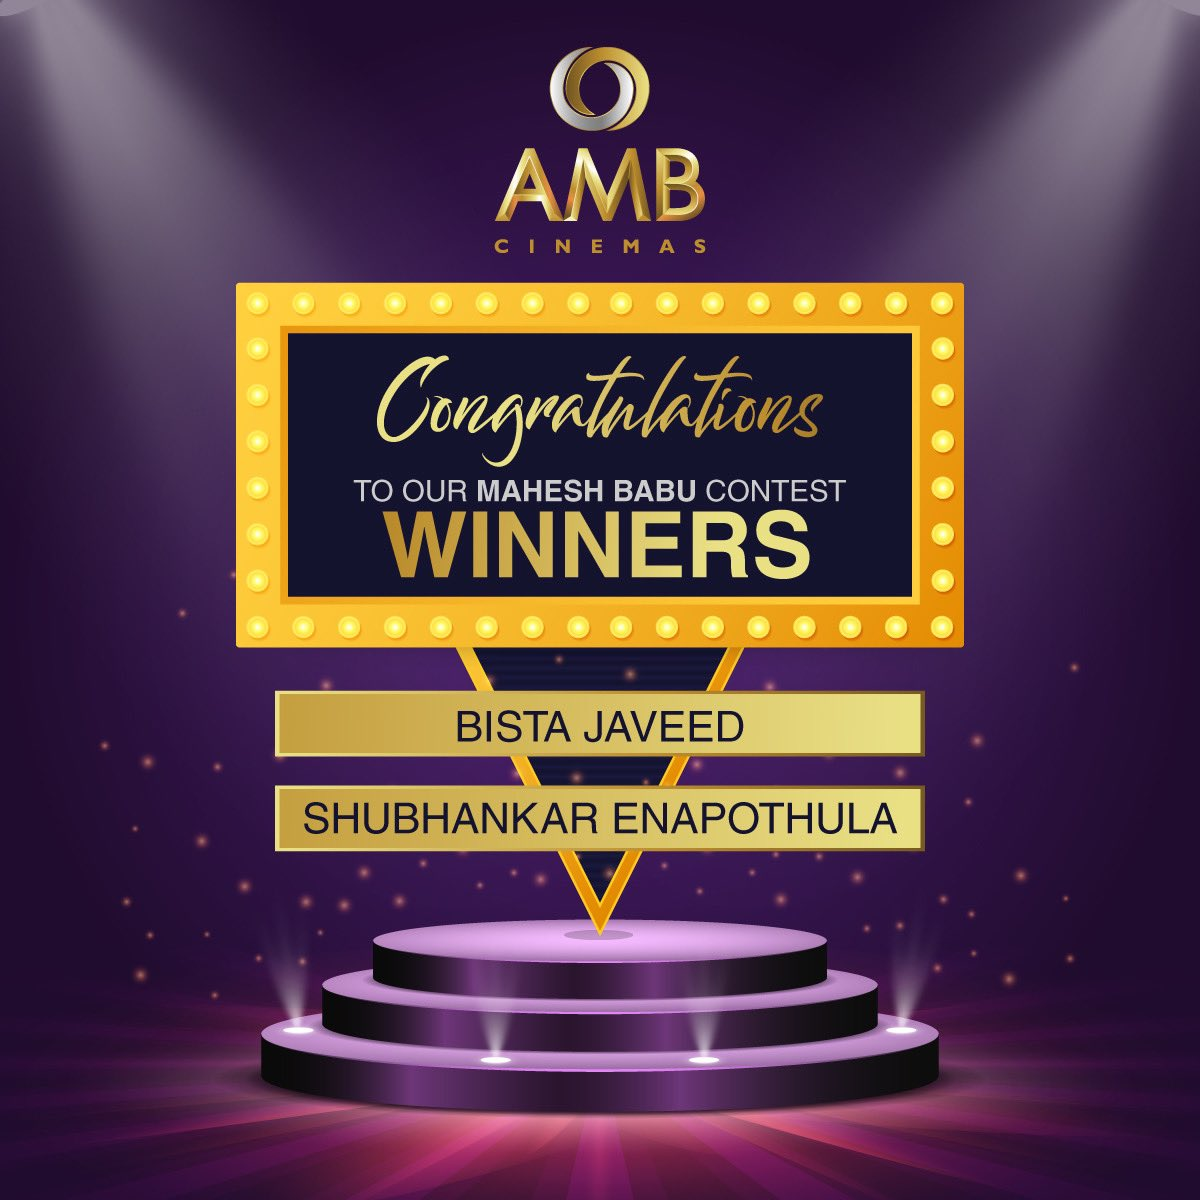 Congratulations to the WINNERS of the Day 2 of the Mahesh Babu contest!🎉 Please DM us for details on how to redeem your prize! 🥳 #Winners #MaheshBabu #MaheshBabuContest #ContestAlert #ExcitingPrizes #Gifts #AMBCinemas